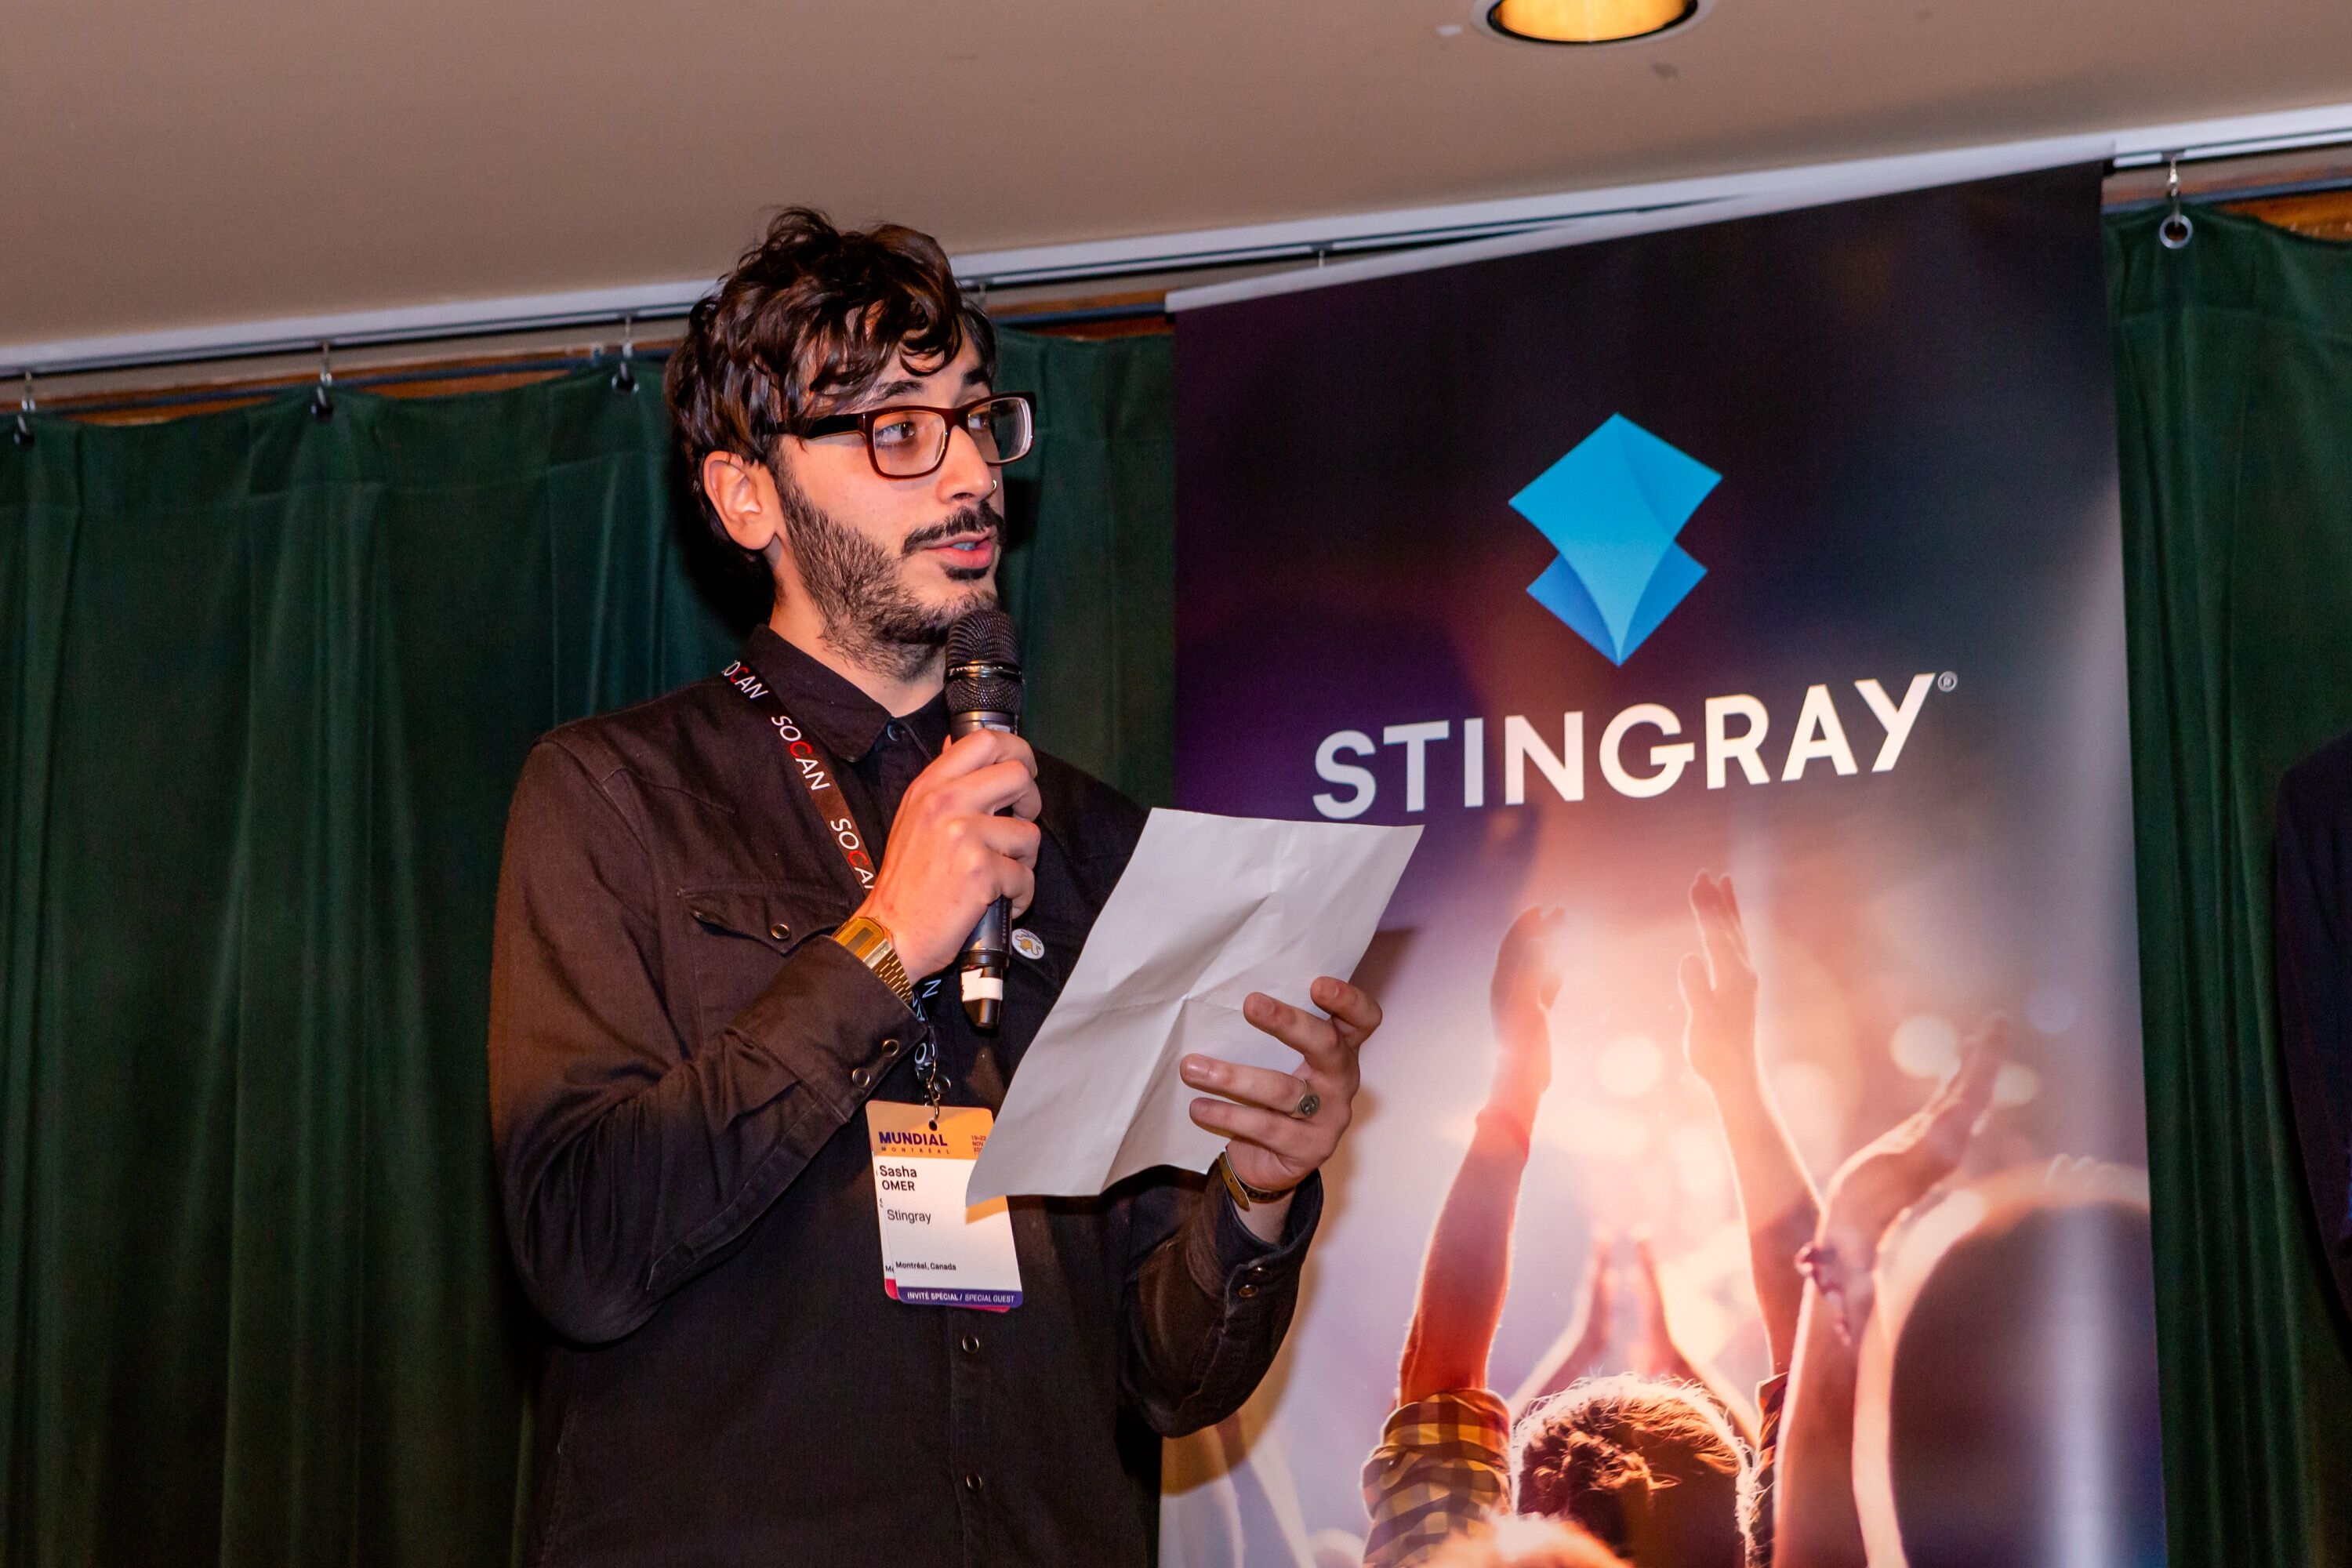 Shasha Omer, Music Programmer (Stingray Music)